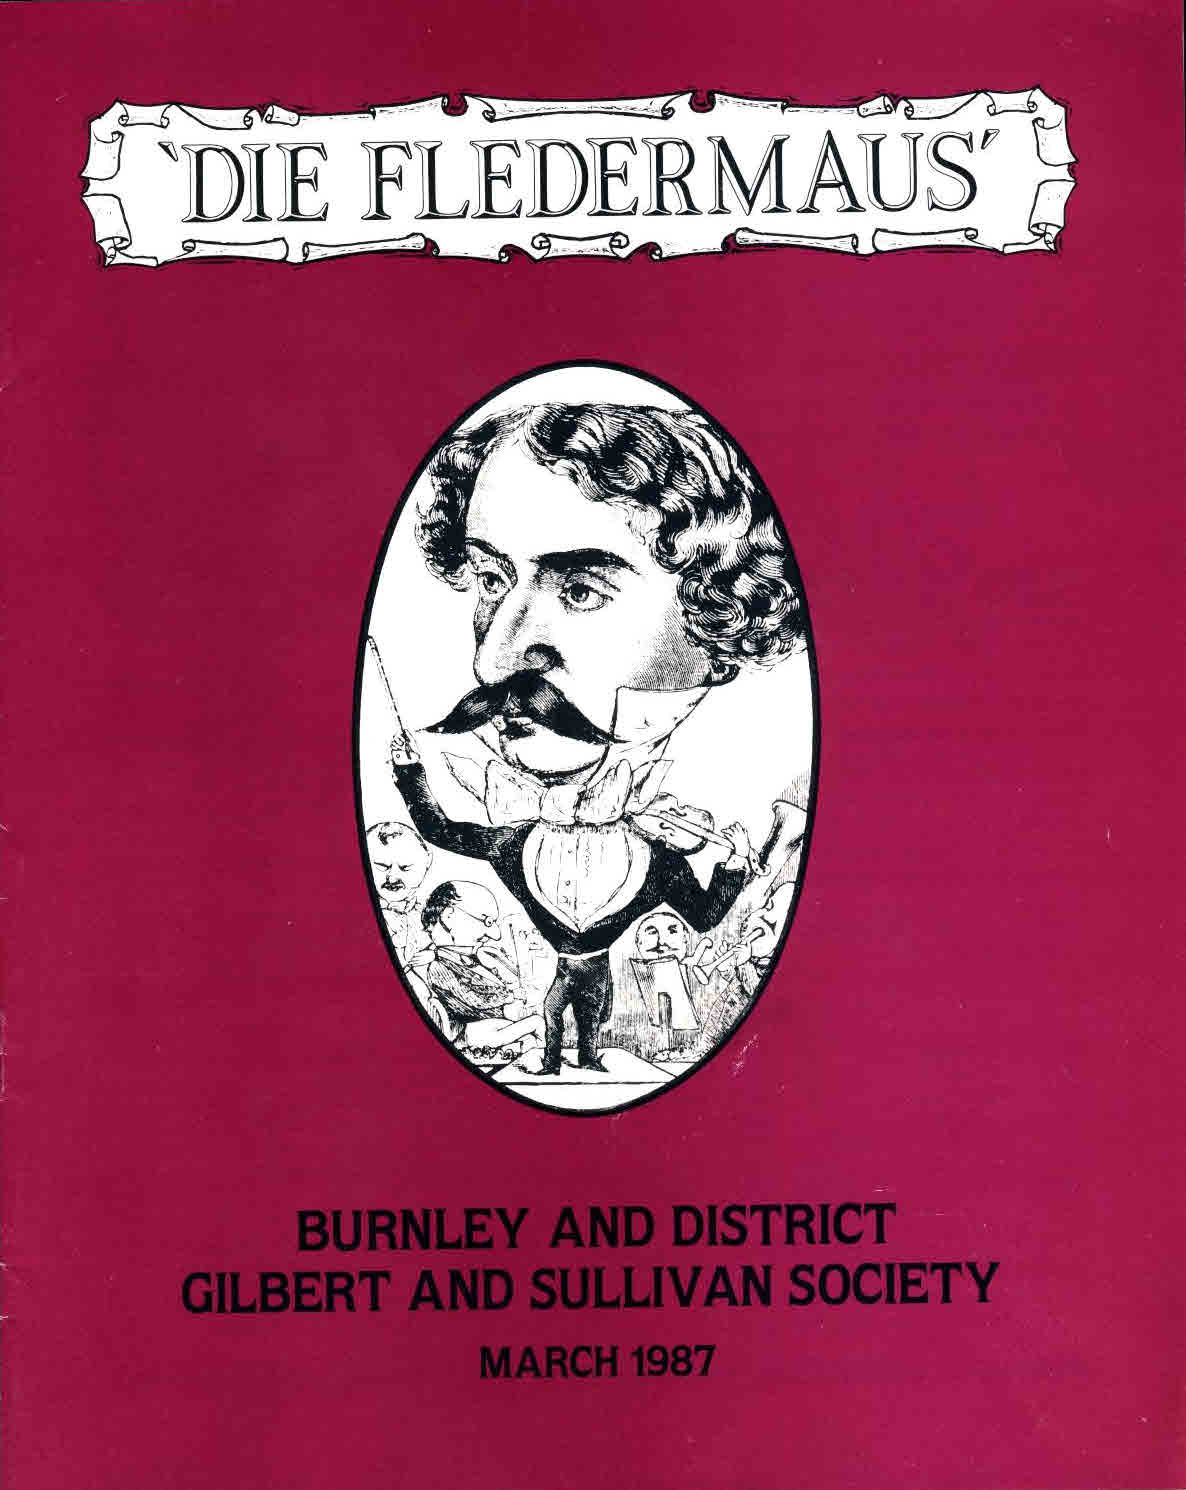 Die Fledermaus 1987 BURNLEY & DISTRICK Gilbert & Sullivan Society ref56 S2-box4  This is a pre-owned product in good condition - please see full description and photo.